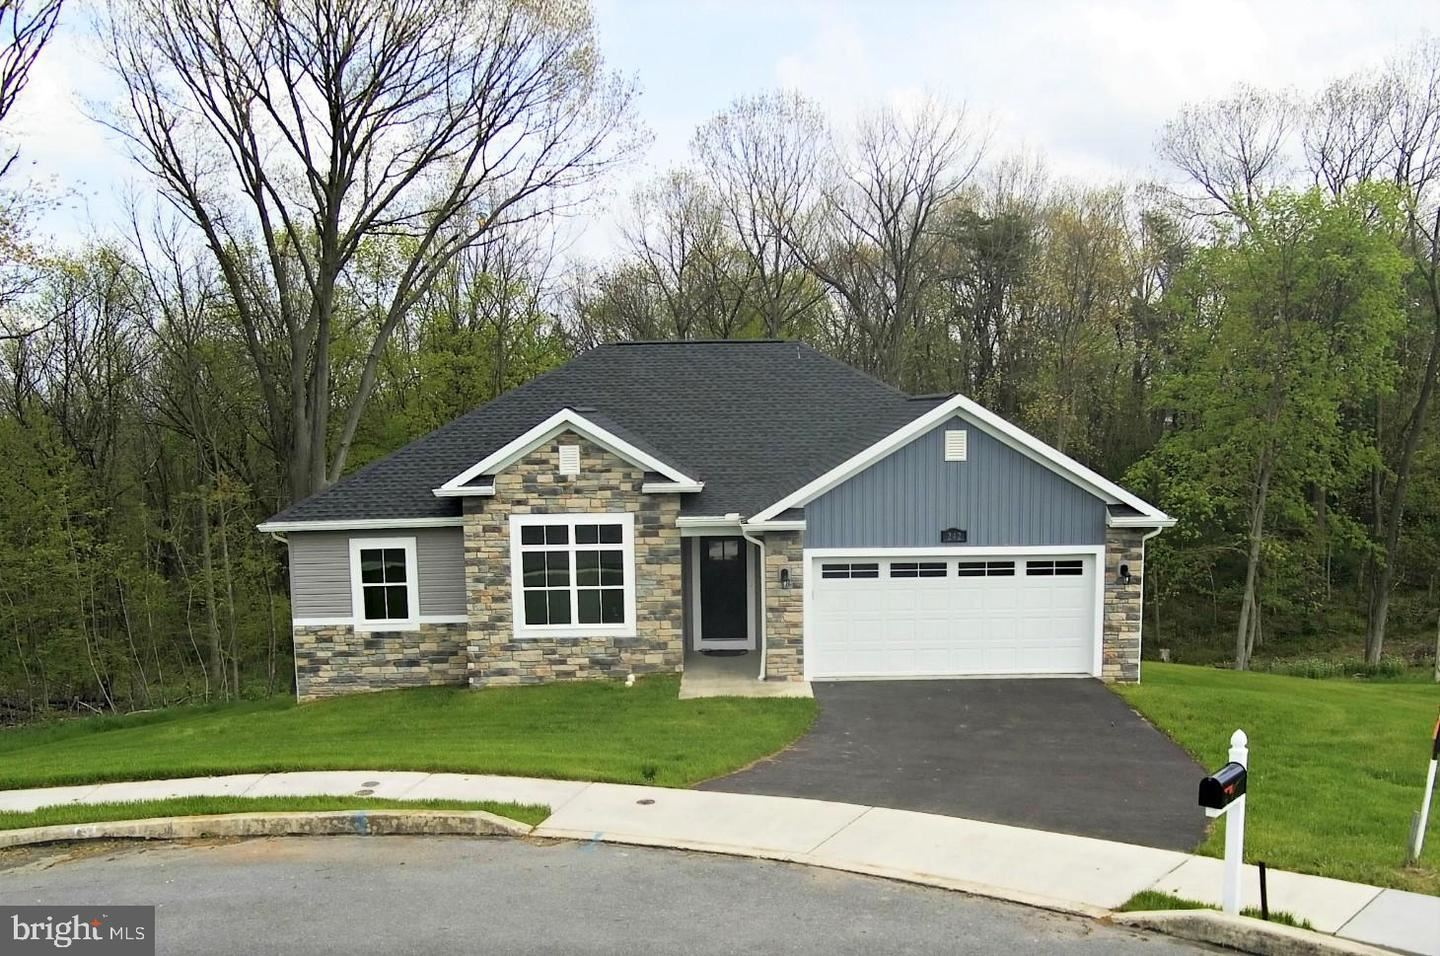 242 RONALD DR, Greencastle, PA 17225 - #: PAFL169112